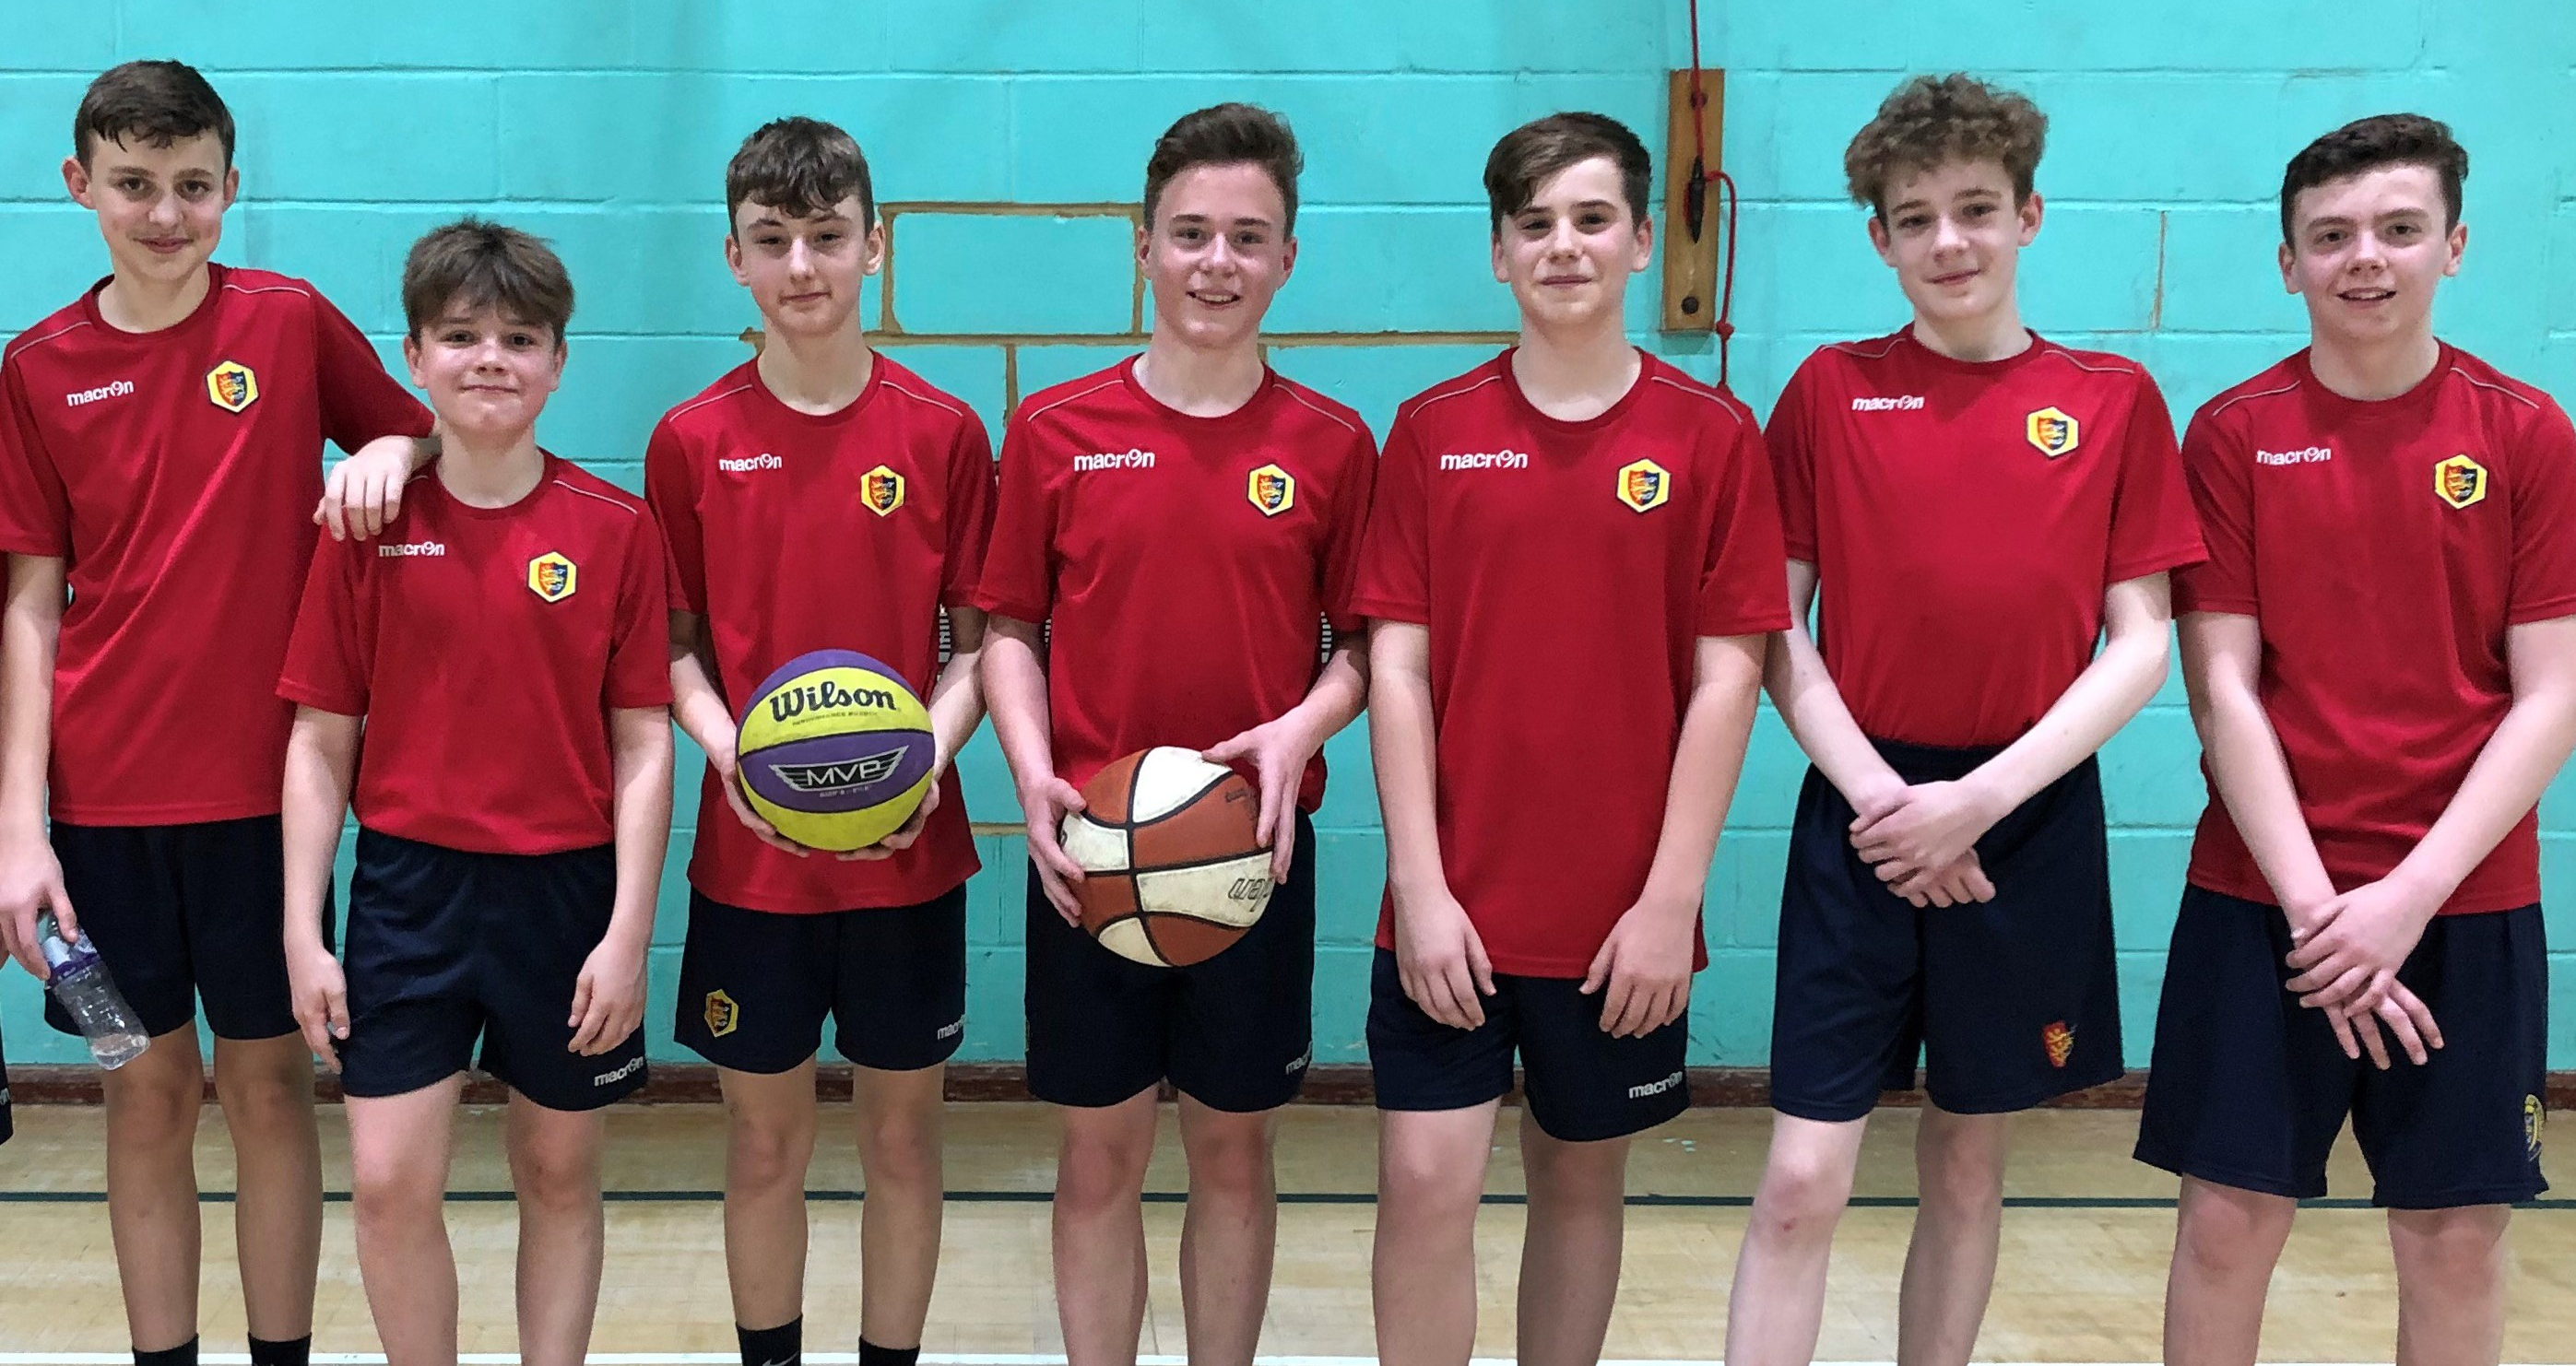 Parker's players dominant at inter-school tournament